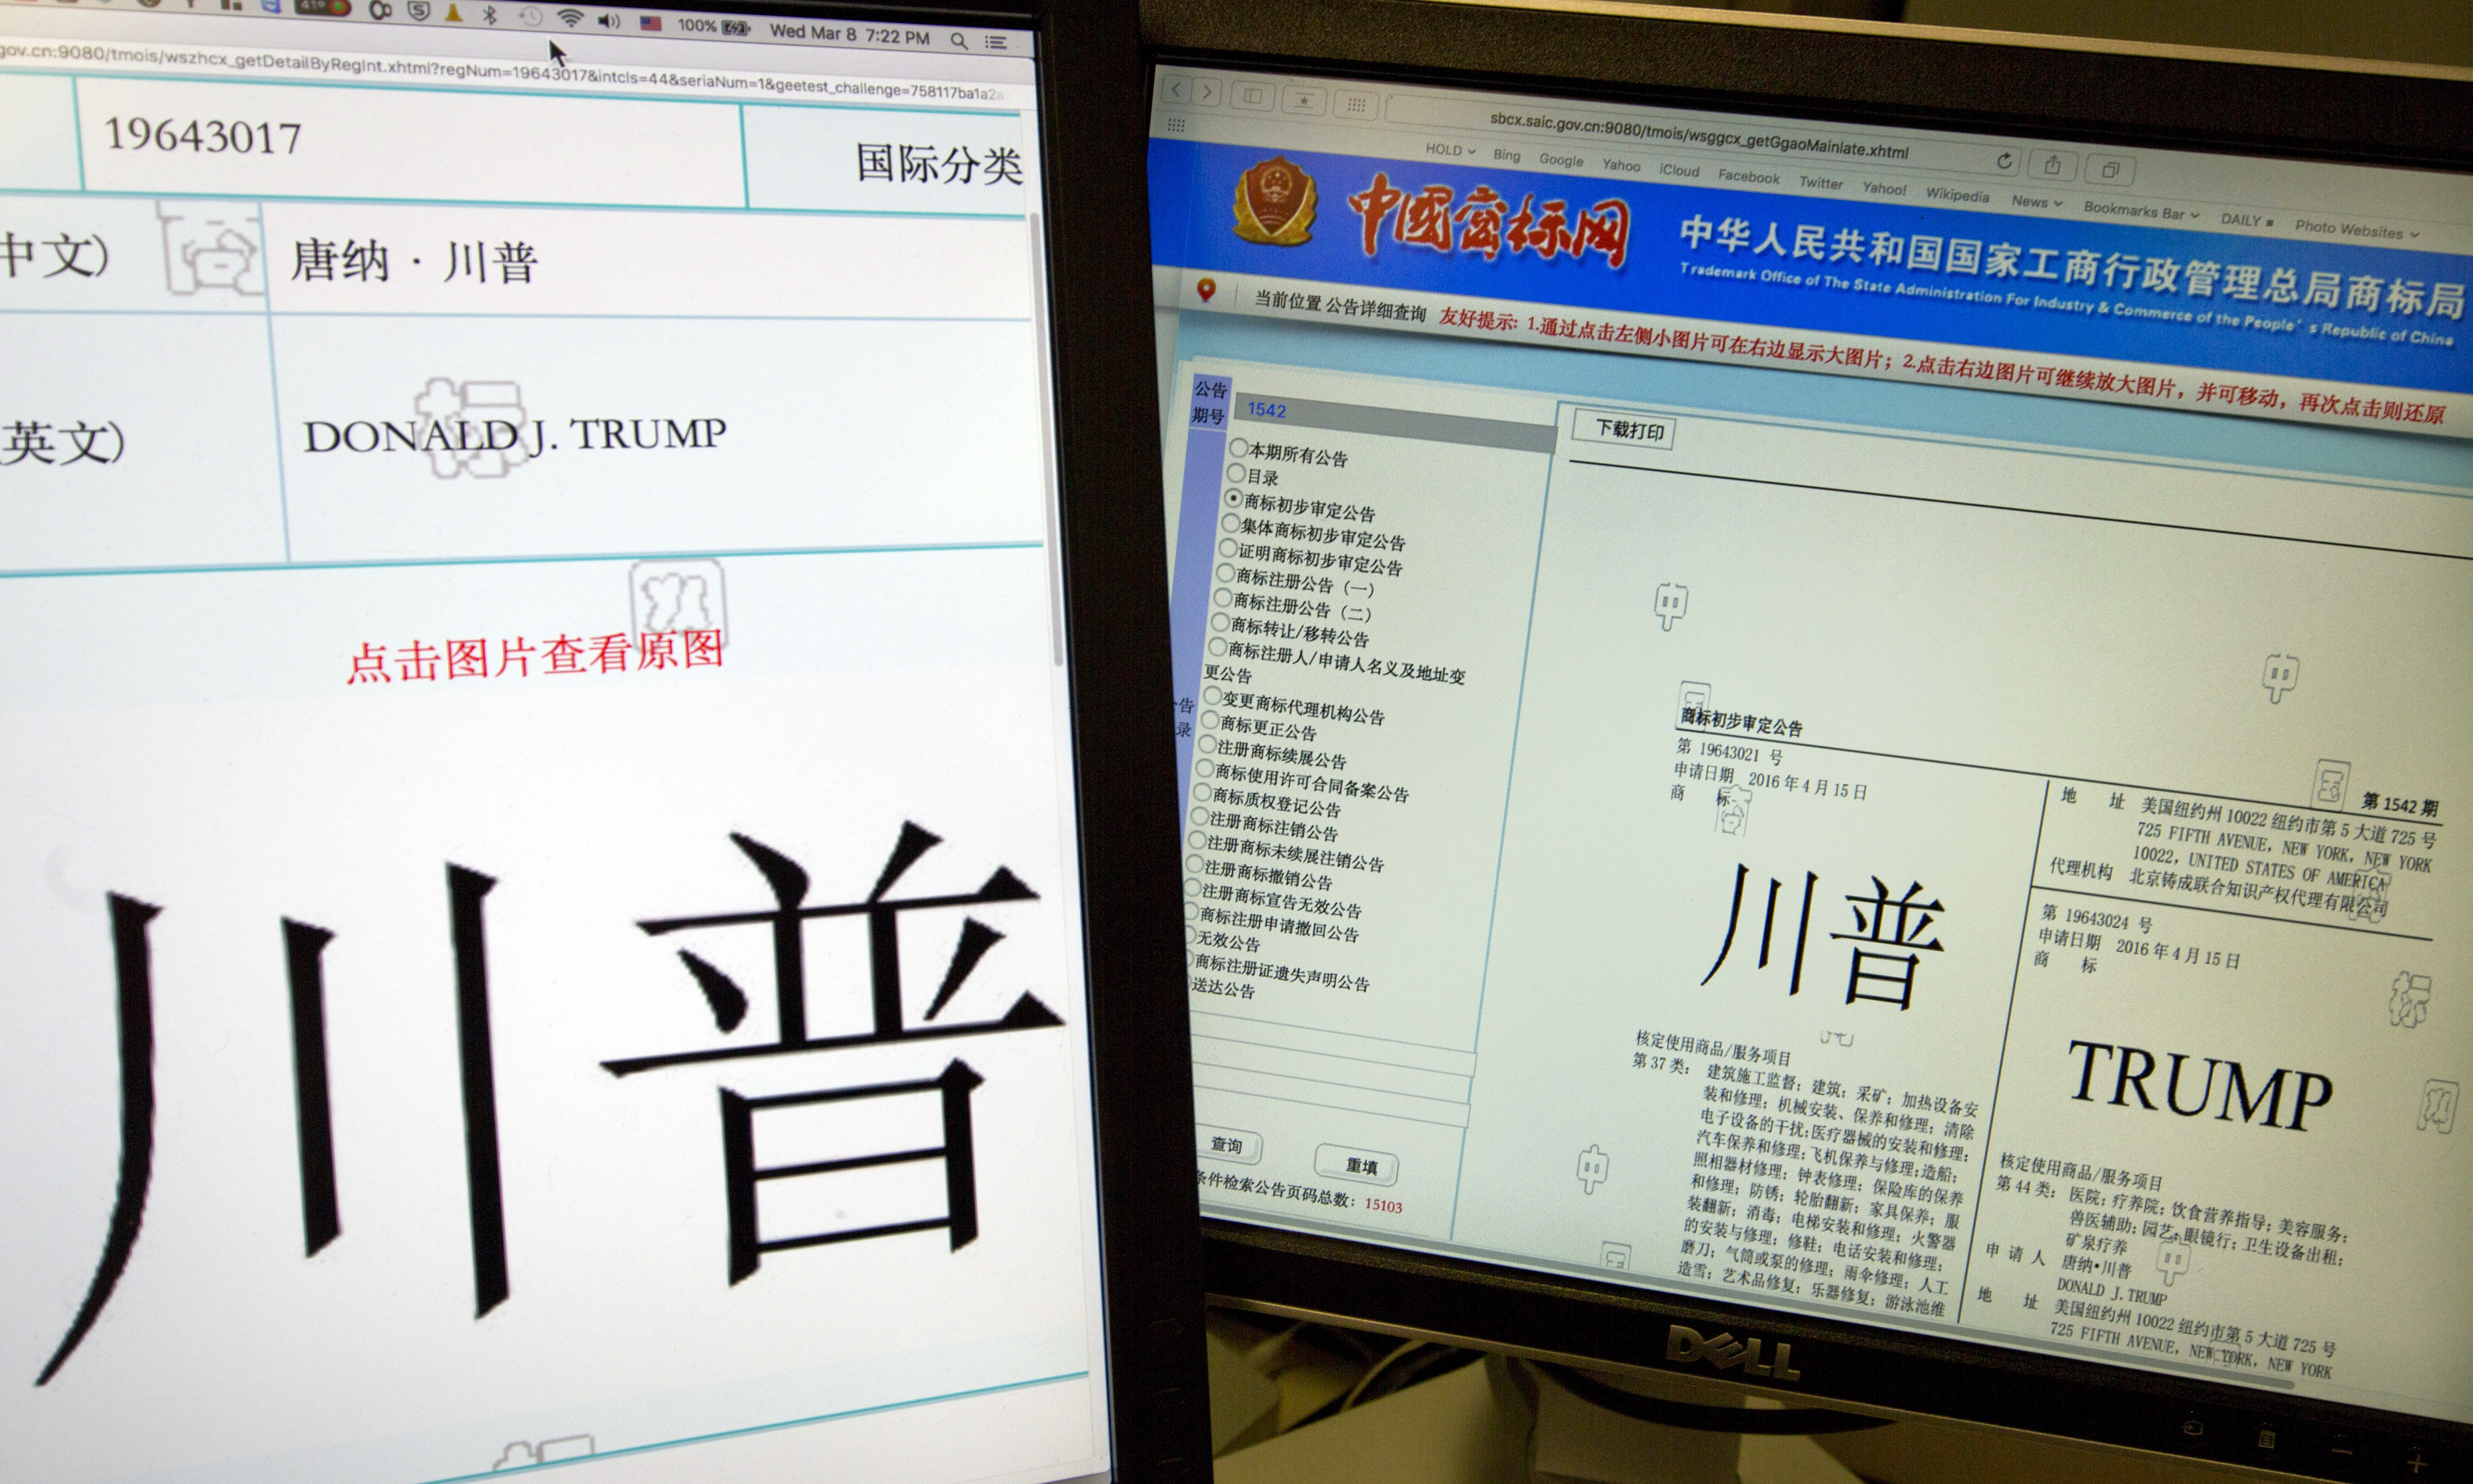 Computer screens showing some of the Trump trademarks approved by China's Trademark office and seen on their website in Beijing, China, Wednesday, March 8, 2017. China has granted preliminary approval for 38 new Trump trademarks, fueling conflict of interest concerns and questions about whether President Donald Trump is receiving special treatment from the Chinese government.